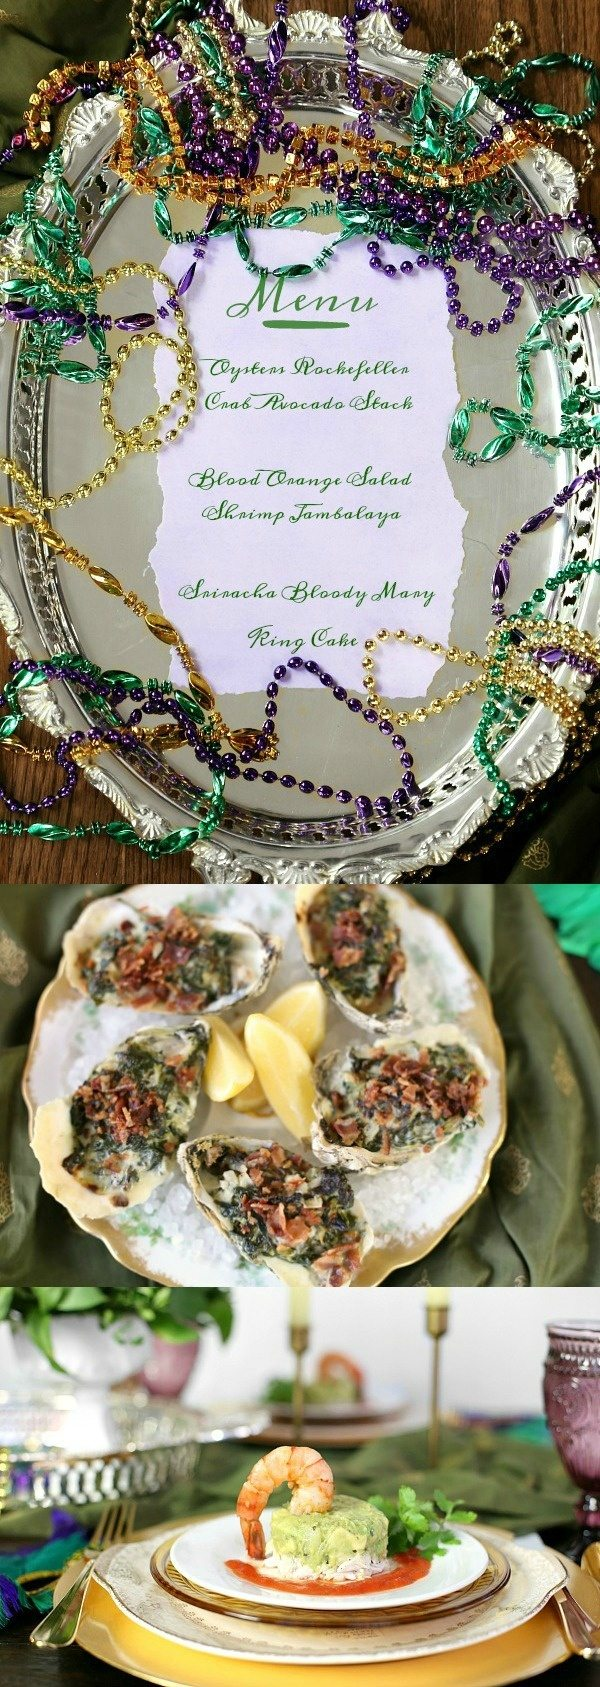 Mardi Gras Dinner Party Menu -- recipes, decor and table setting ideas - from RecipeGirl.com